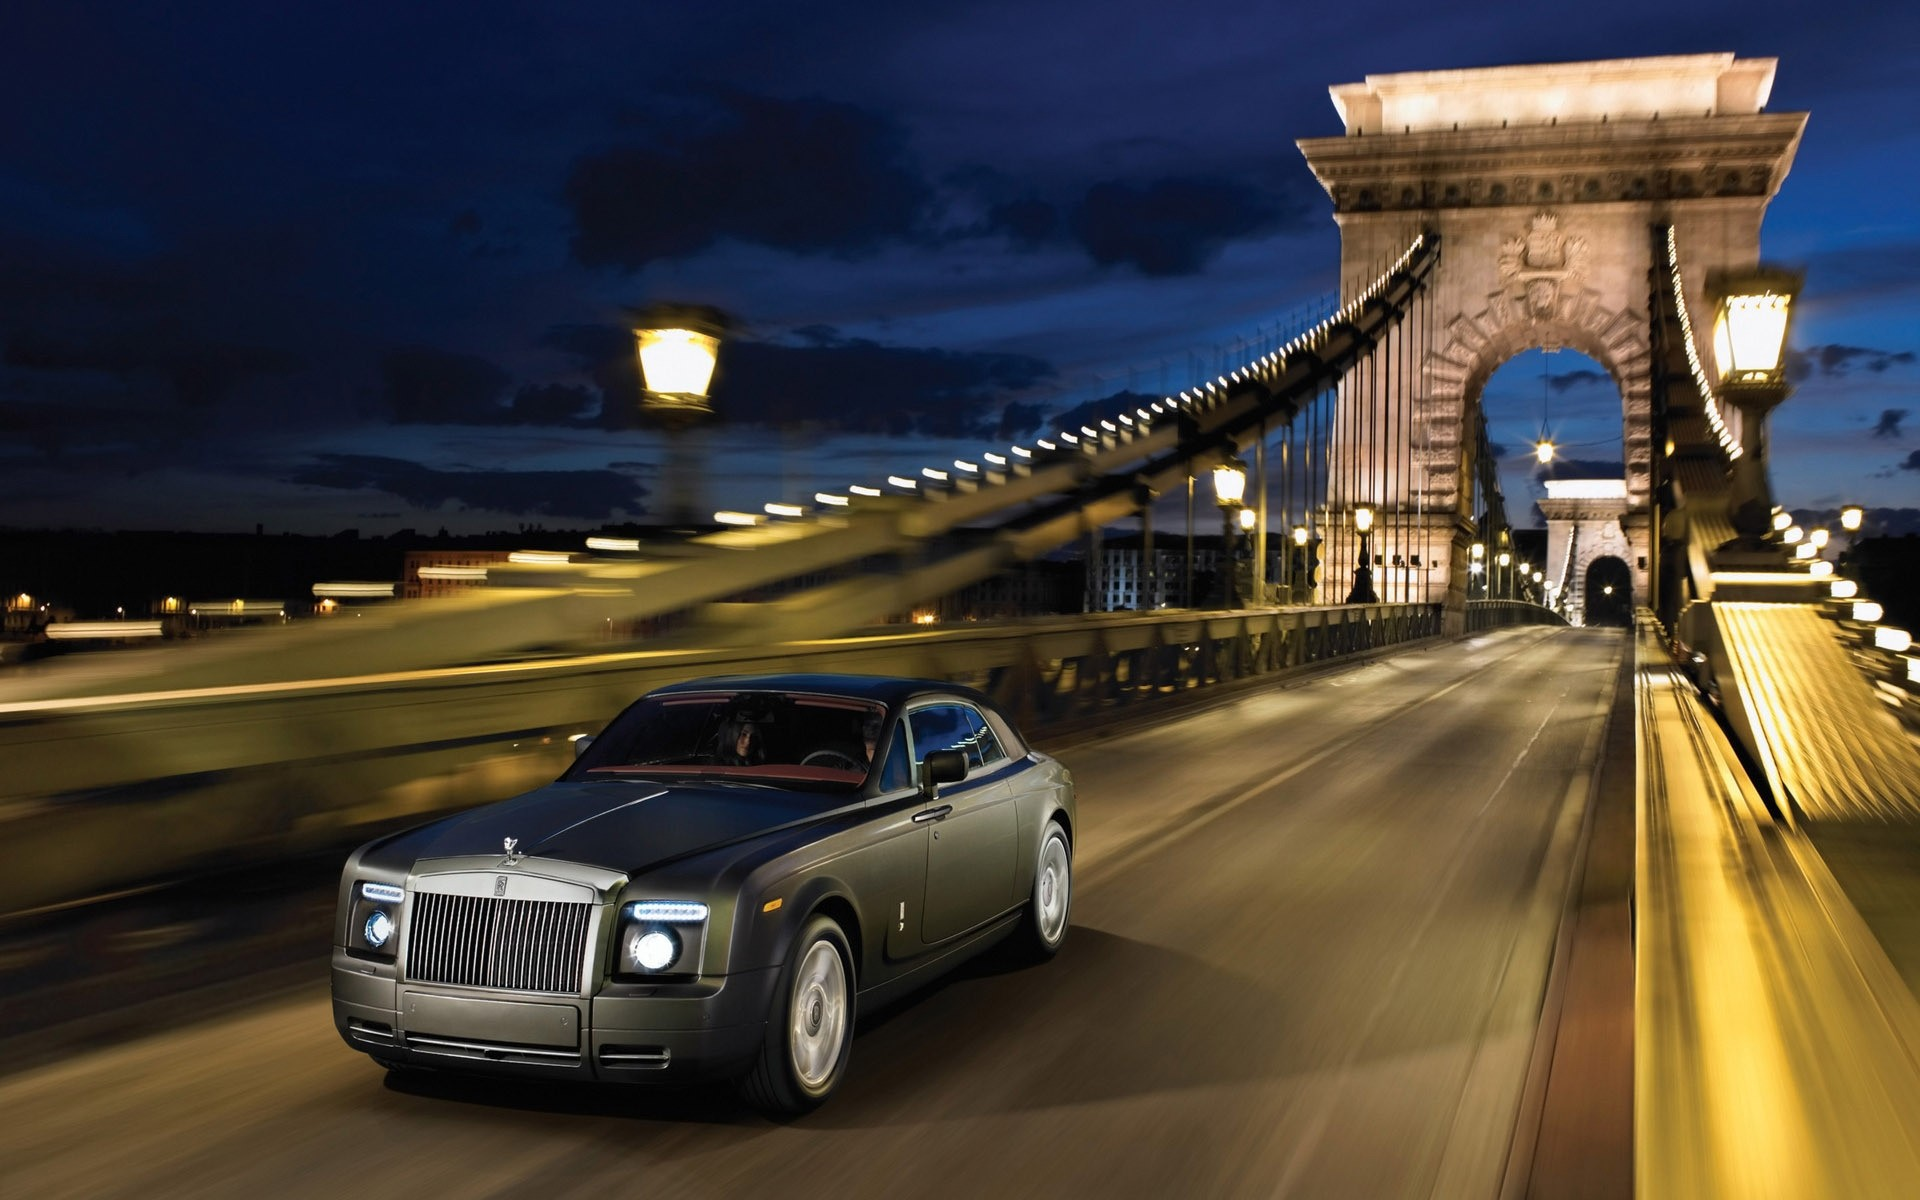 rolls royce car travel transportation system road vehicle blur street traffic pavement outdoors architecture fast city rolse royce 101ex lomousine